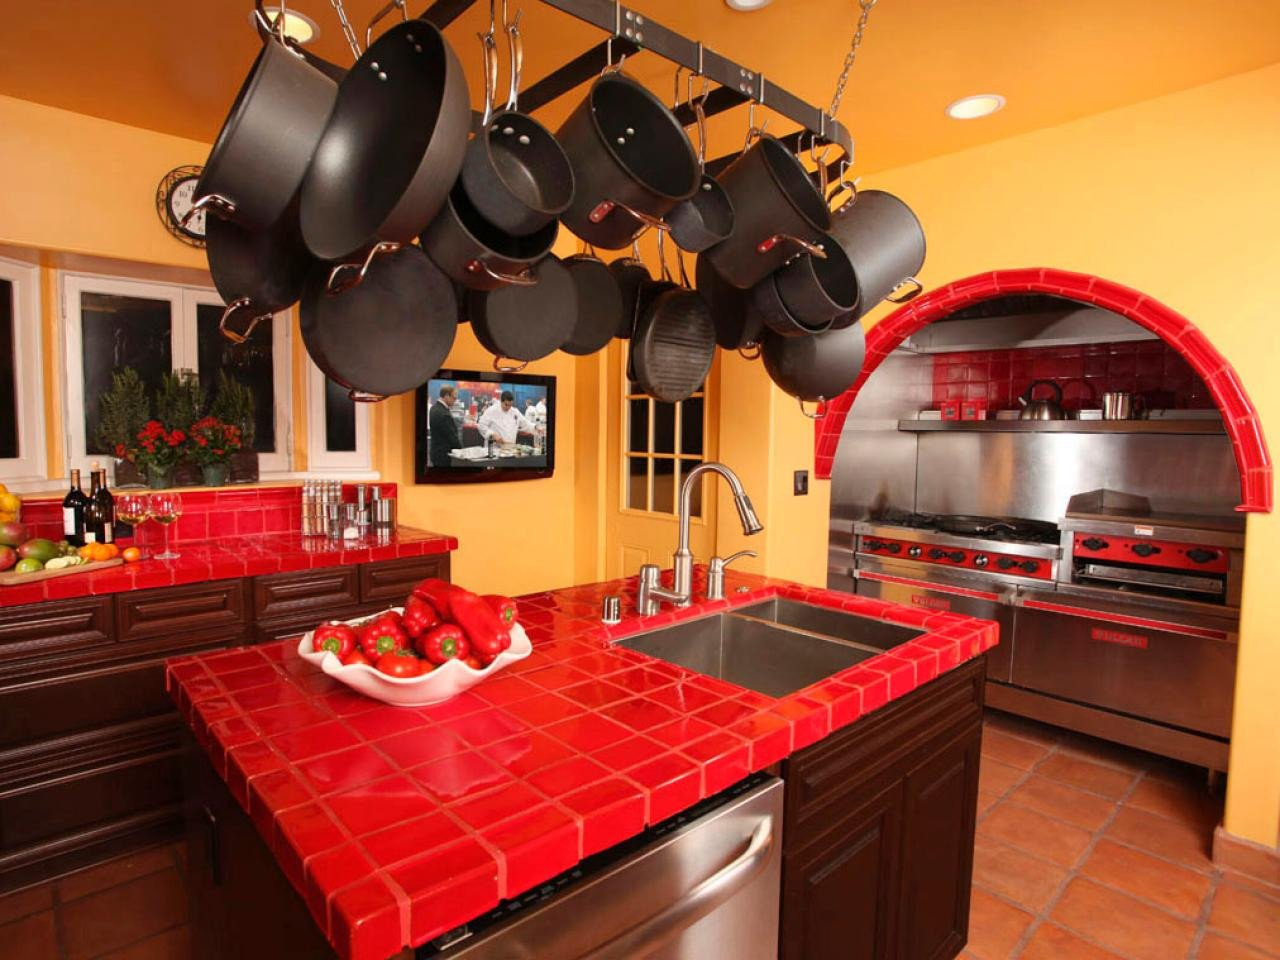 Red and Yellow Kitchen Decor Fresh Victorian Kitchens Kitchen Designs Choose Kitchen Layouts & Remodeling Materials